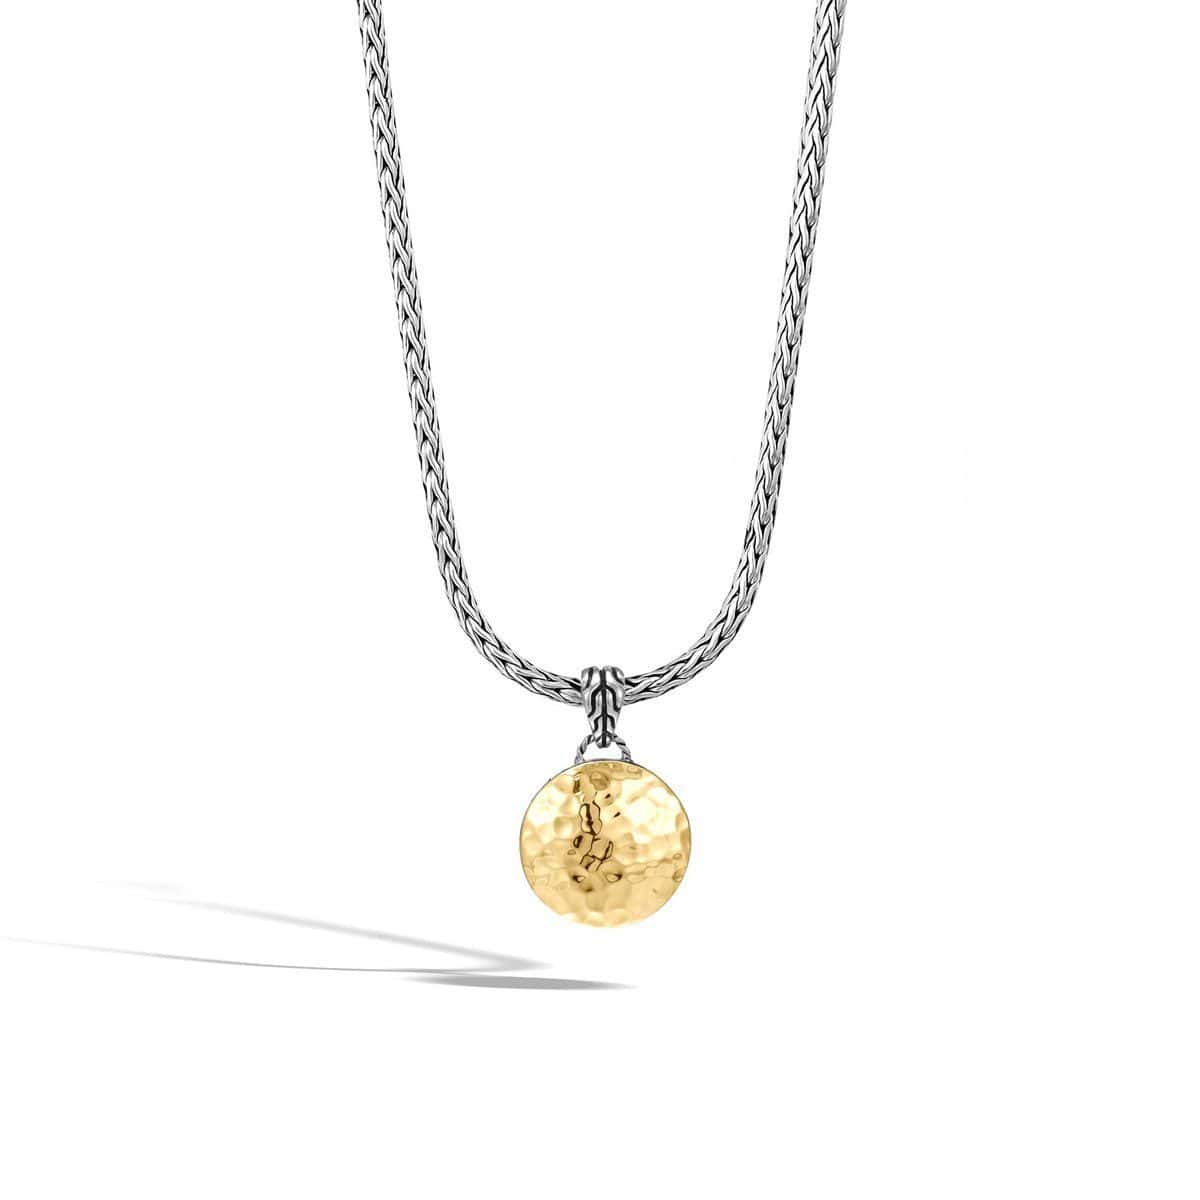 Dot Palu Gold & Silver Pendant Necklace - NZ7158